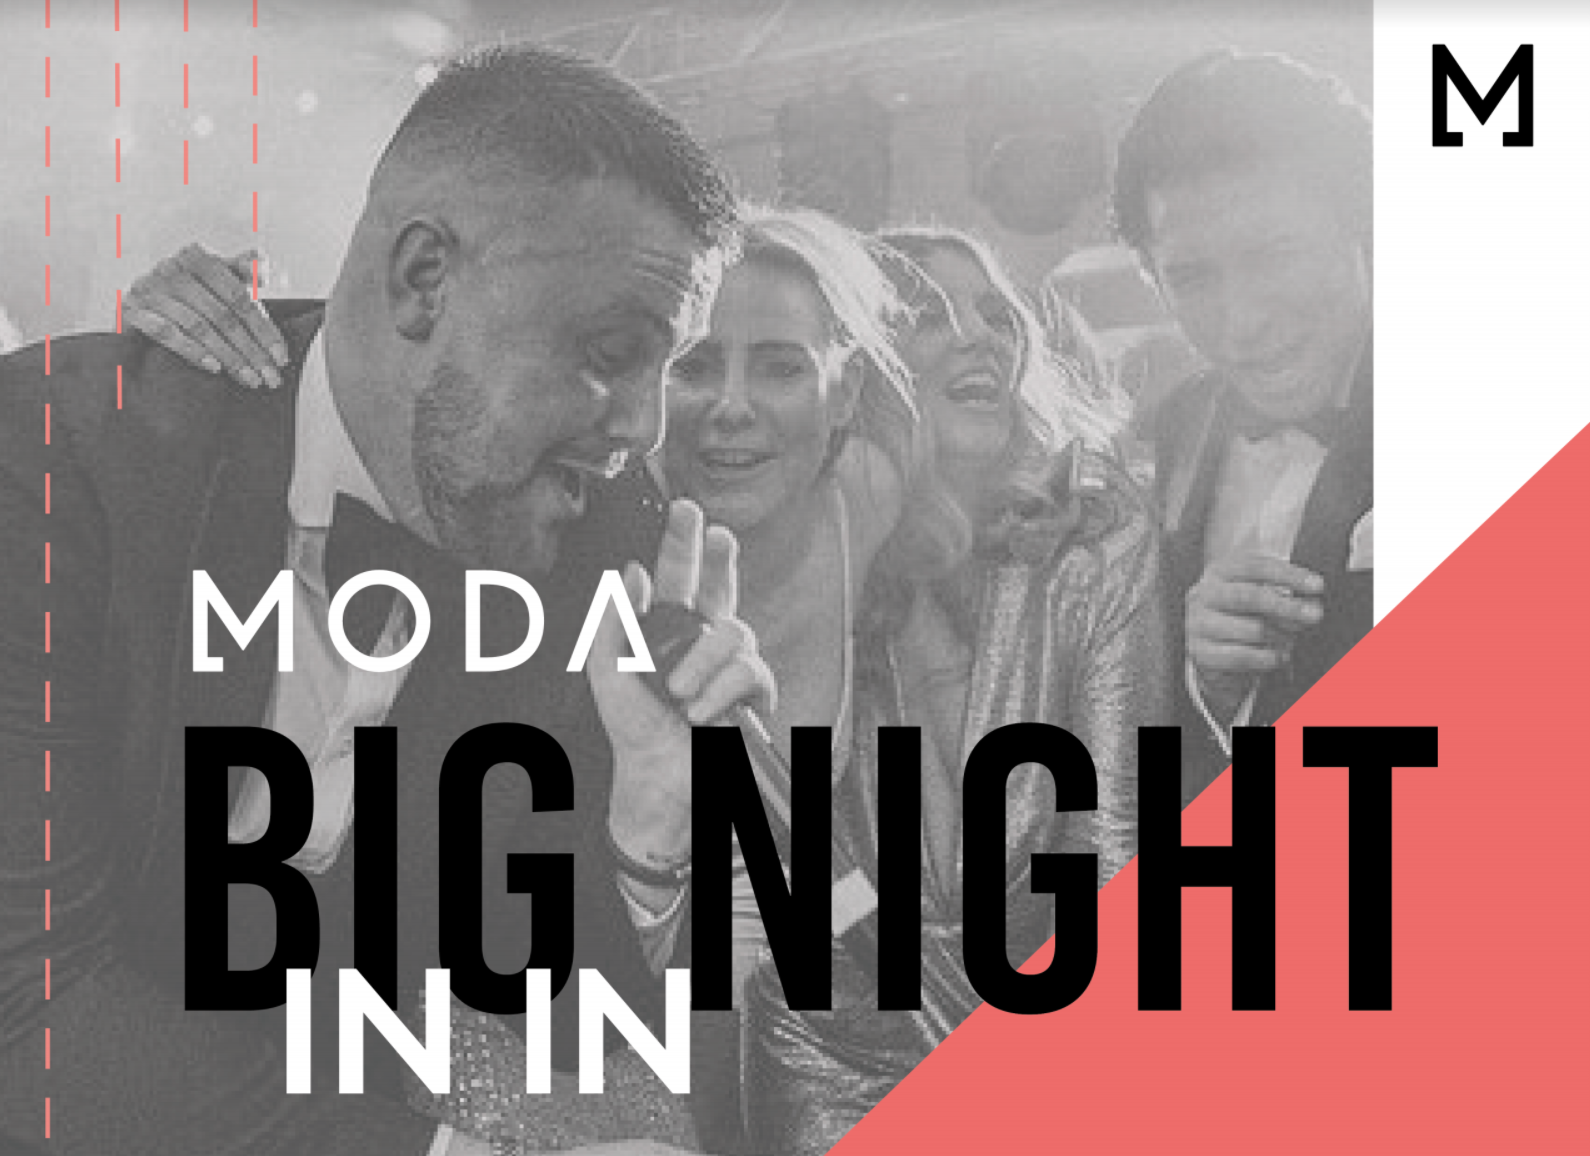 Moda is streaming a live Motown and R&B night from iconic music venue One Eight Six, The Manc